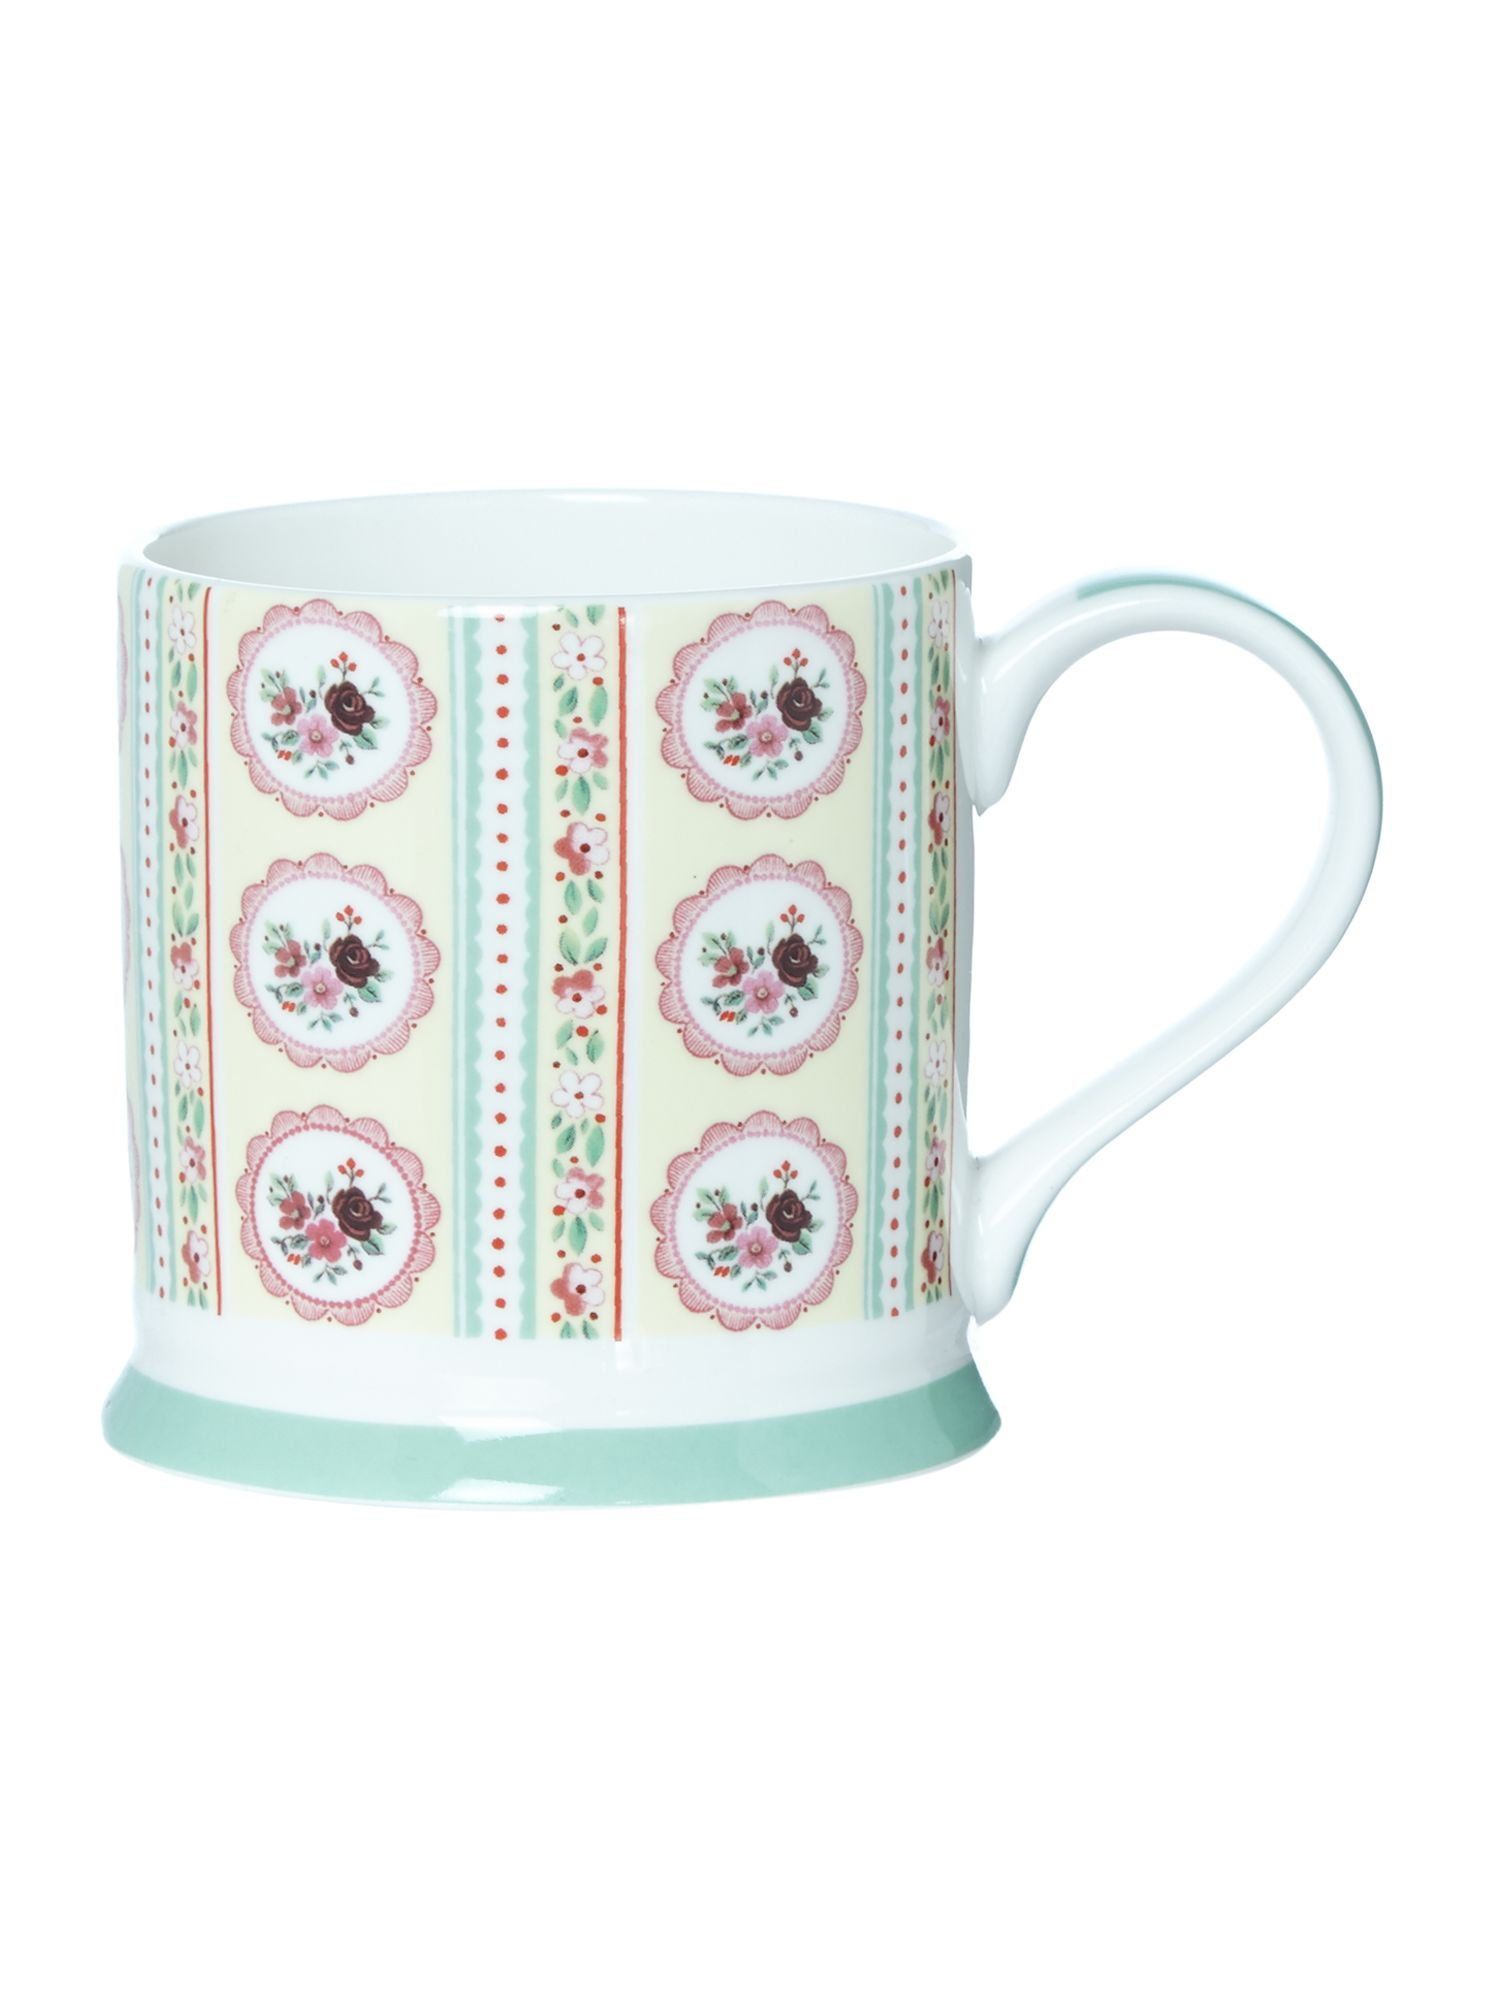 Cameo bouquet mug